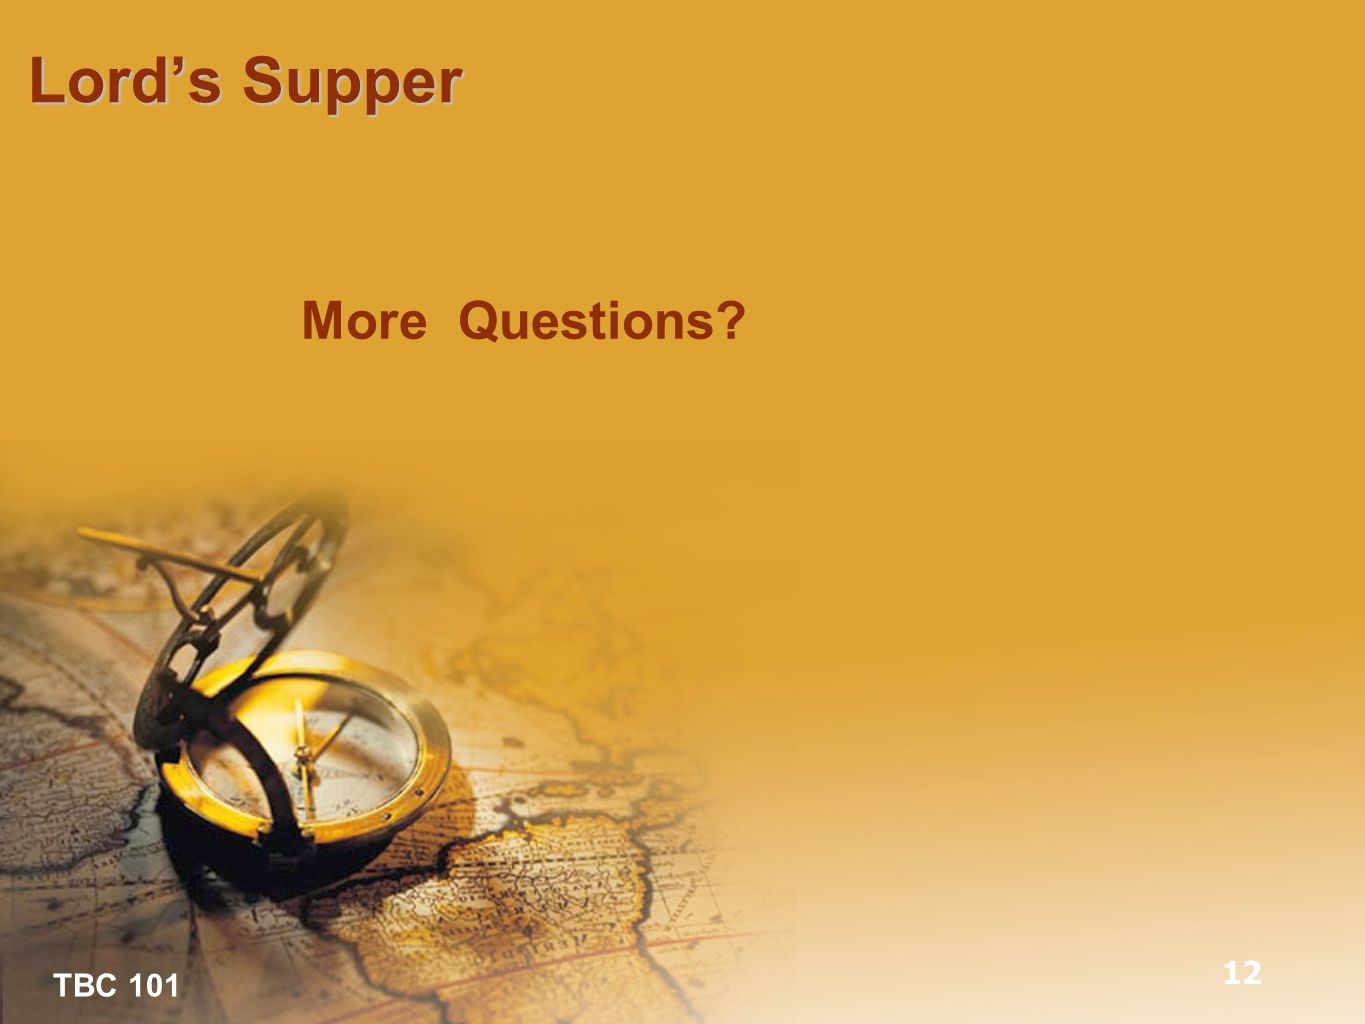 TBC 101 Lord's Supper 12 More Questions